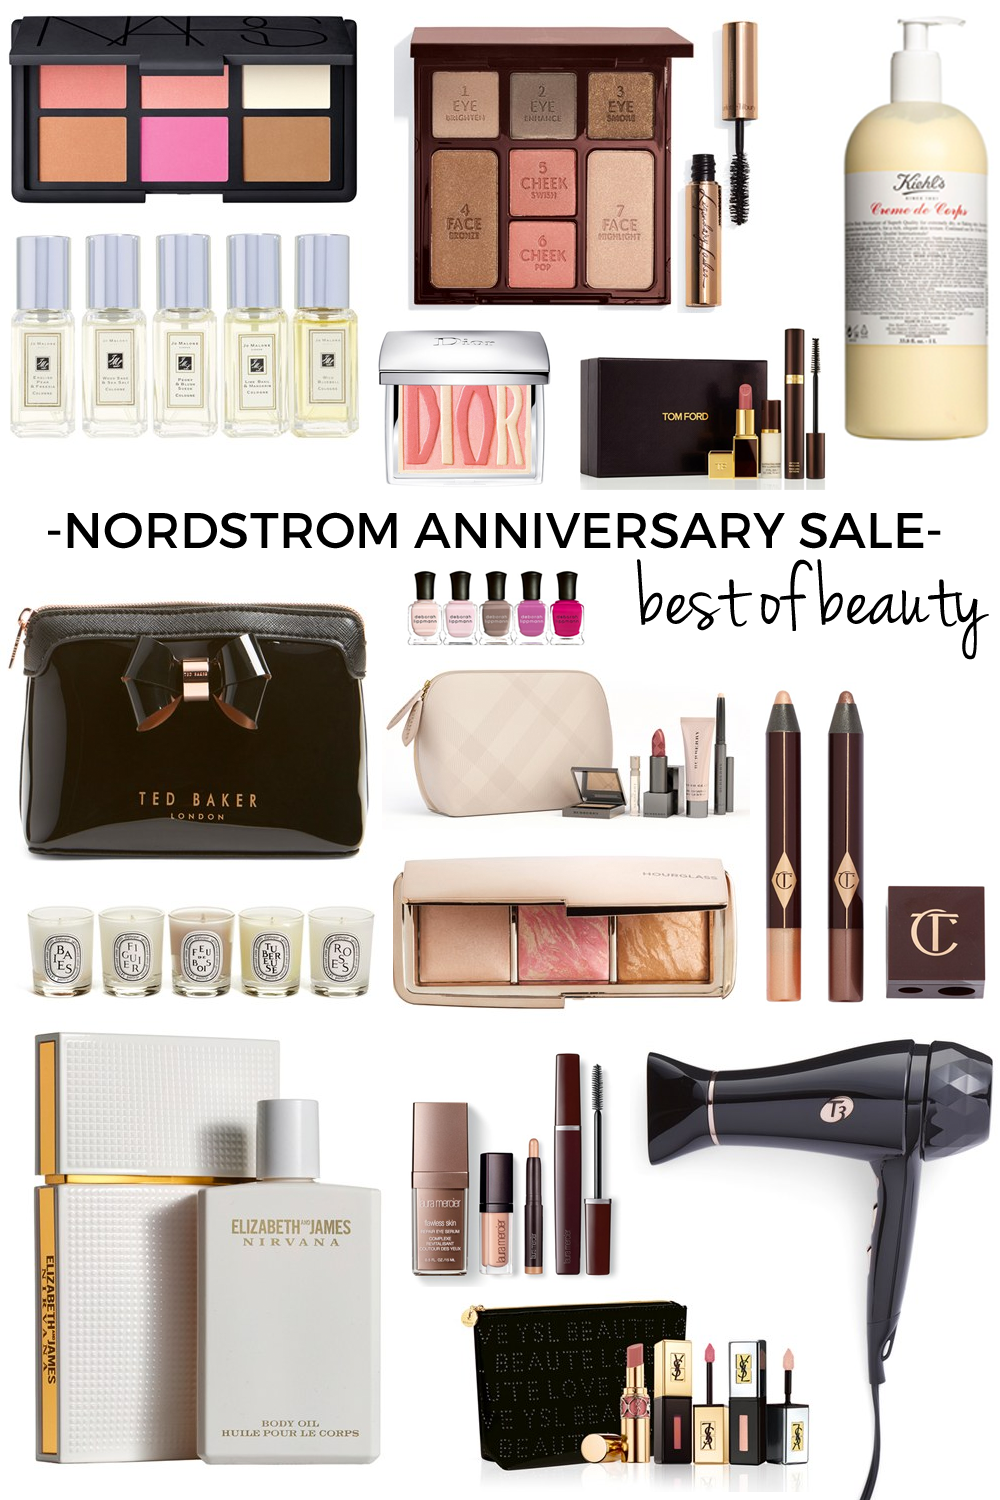 Nordstrom anniversary sale image by jkharmon1000 on Makeup